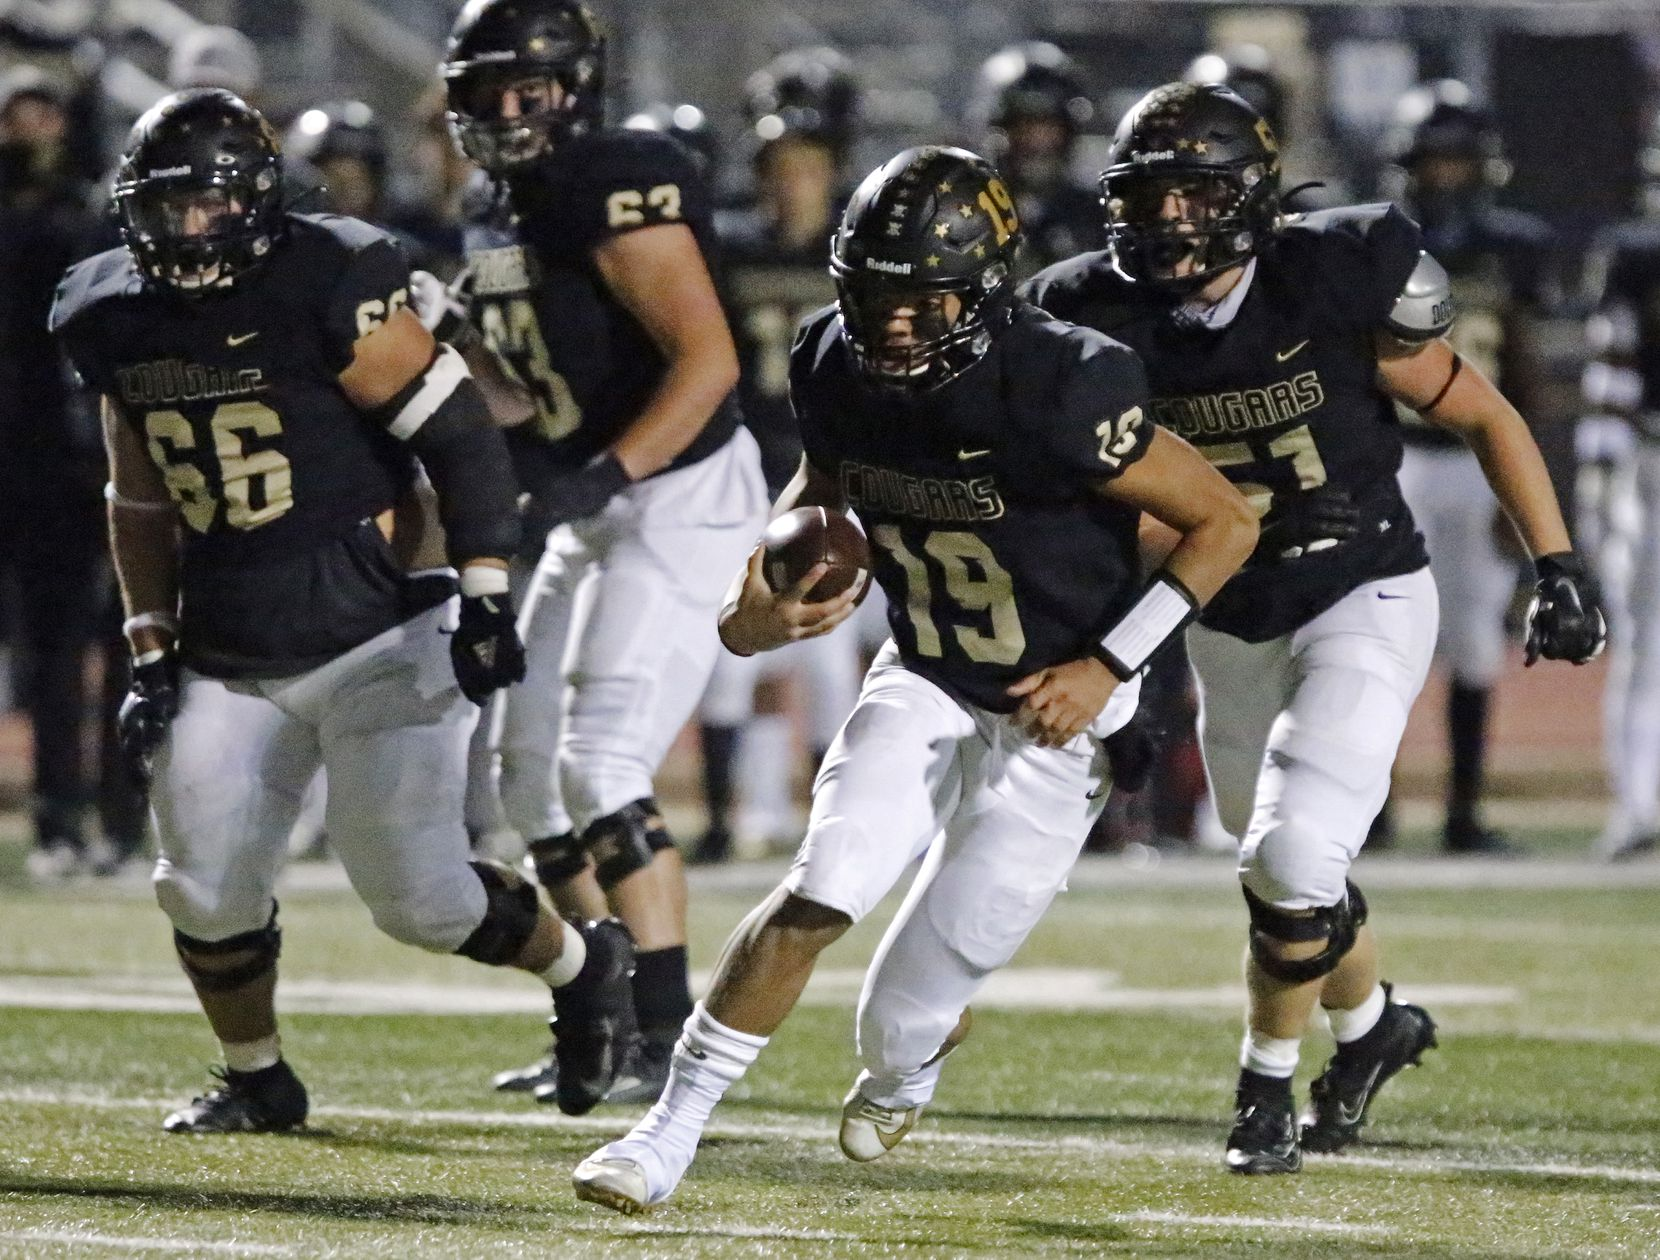 The Colony High School quarterback Jonathan Roberson (19) runs for yardage during the first half as The Colony High School hosted Frisco Reedy High School at Tommy Briggs Stadium on Friday night, December 4, 2020.  (Stewart F. House/Special Contributor)